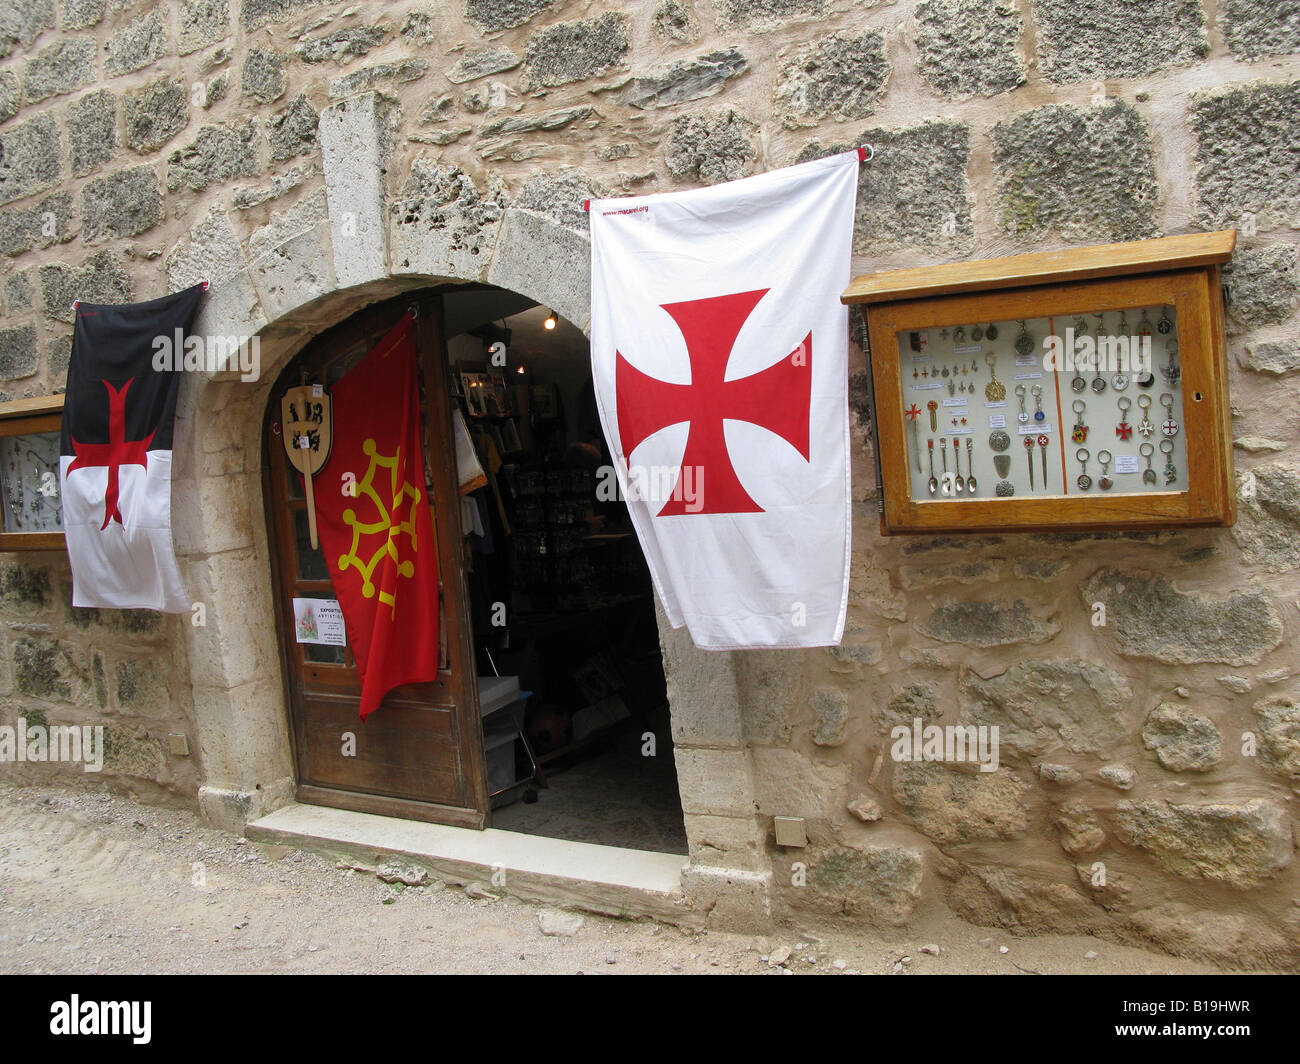 La Couvertoirade a Medieval fortified town which was built by the Knights Templar during the 12th and 13th centuries - Stock Image